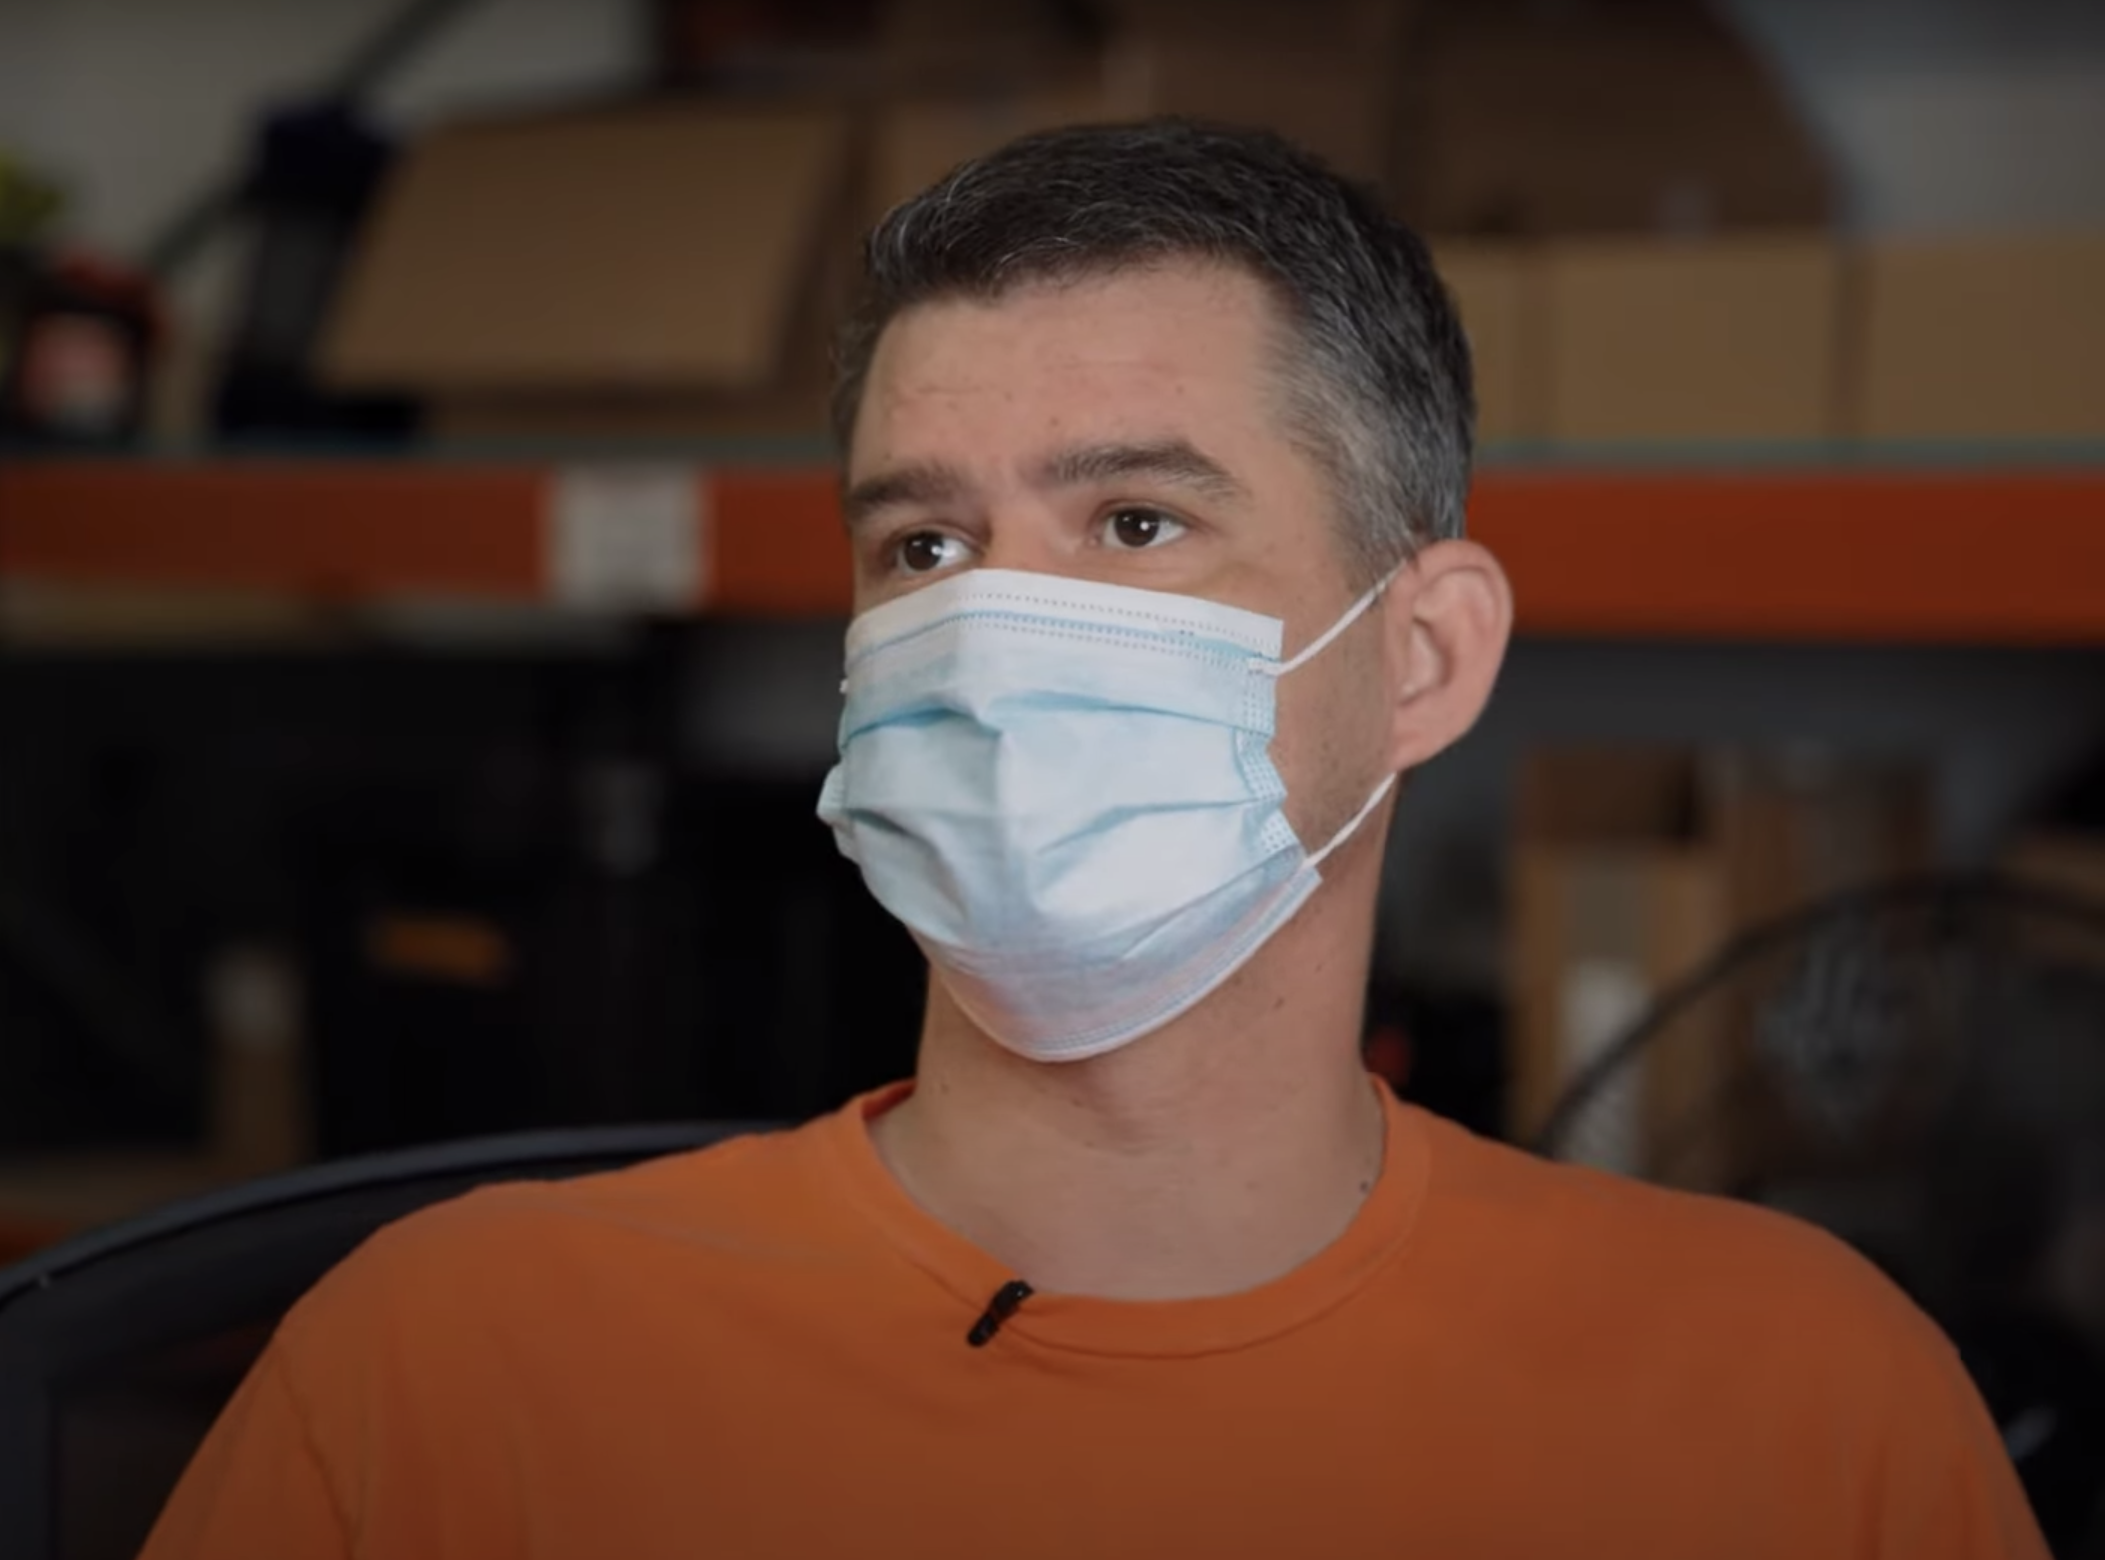 A photo of a man, James C., wearing a face mask.